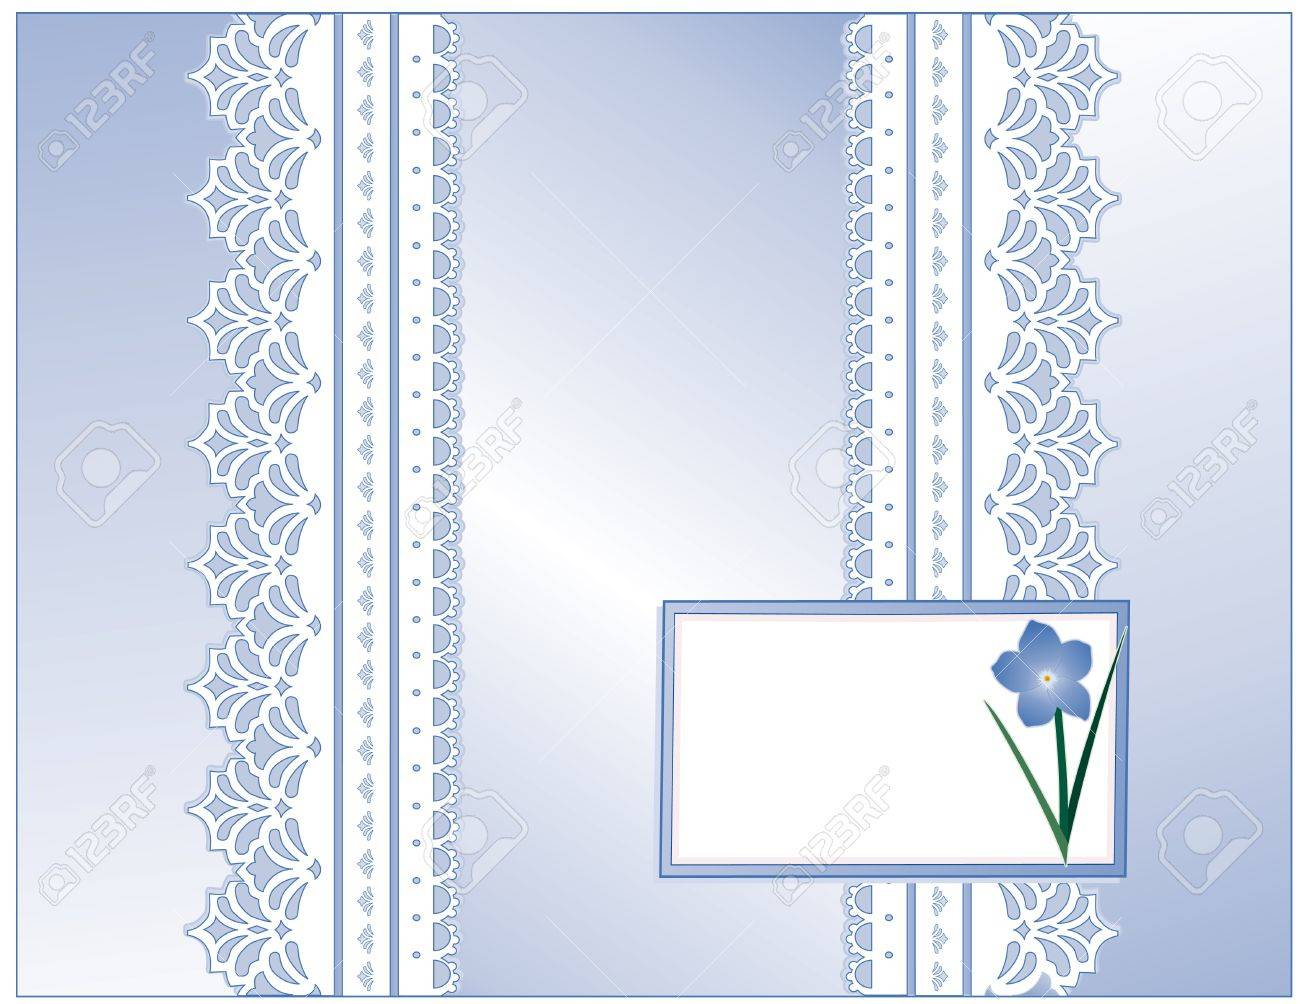 Antique Lace, Victorian style, pastel blue satin, Forget Me Not flower, Gift card with copy space for Mother s Day, birthdays, anniversaries, weddings, showers, celebrations Stock Vector - 12972626